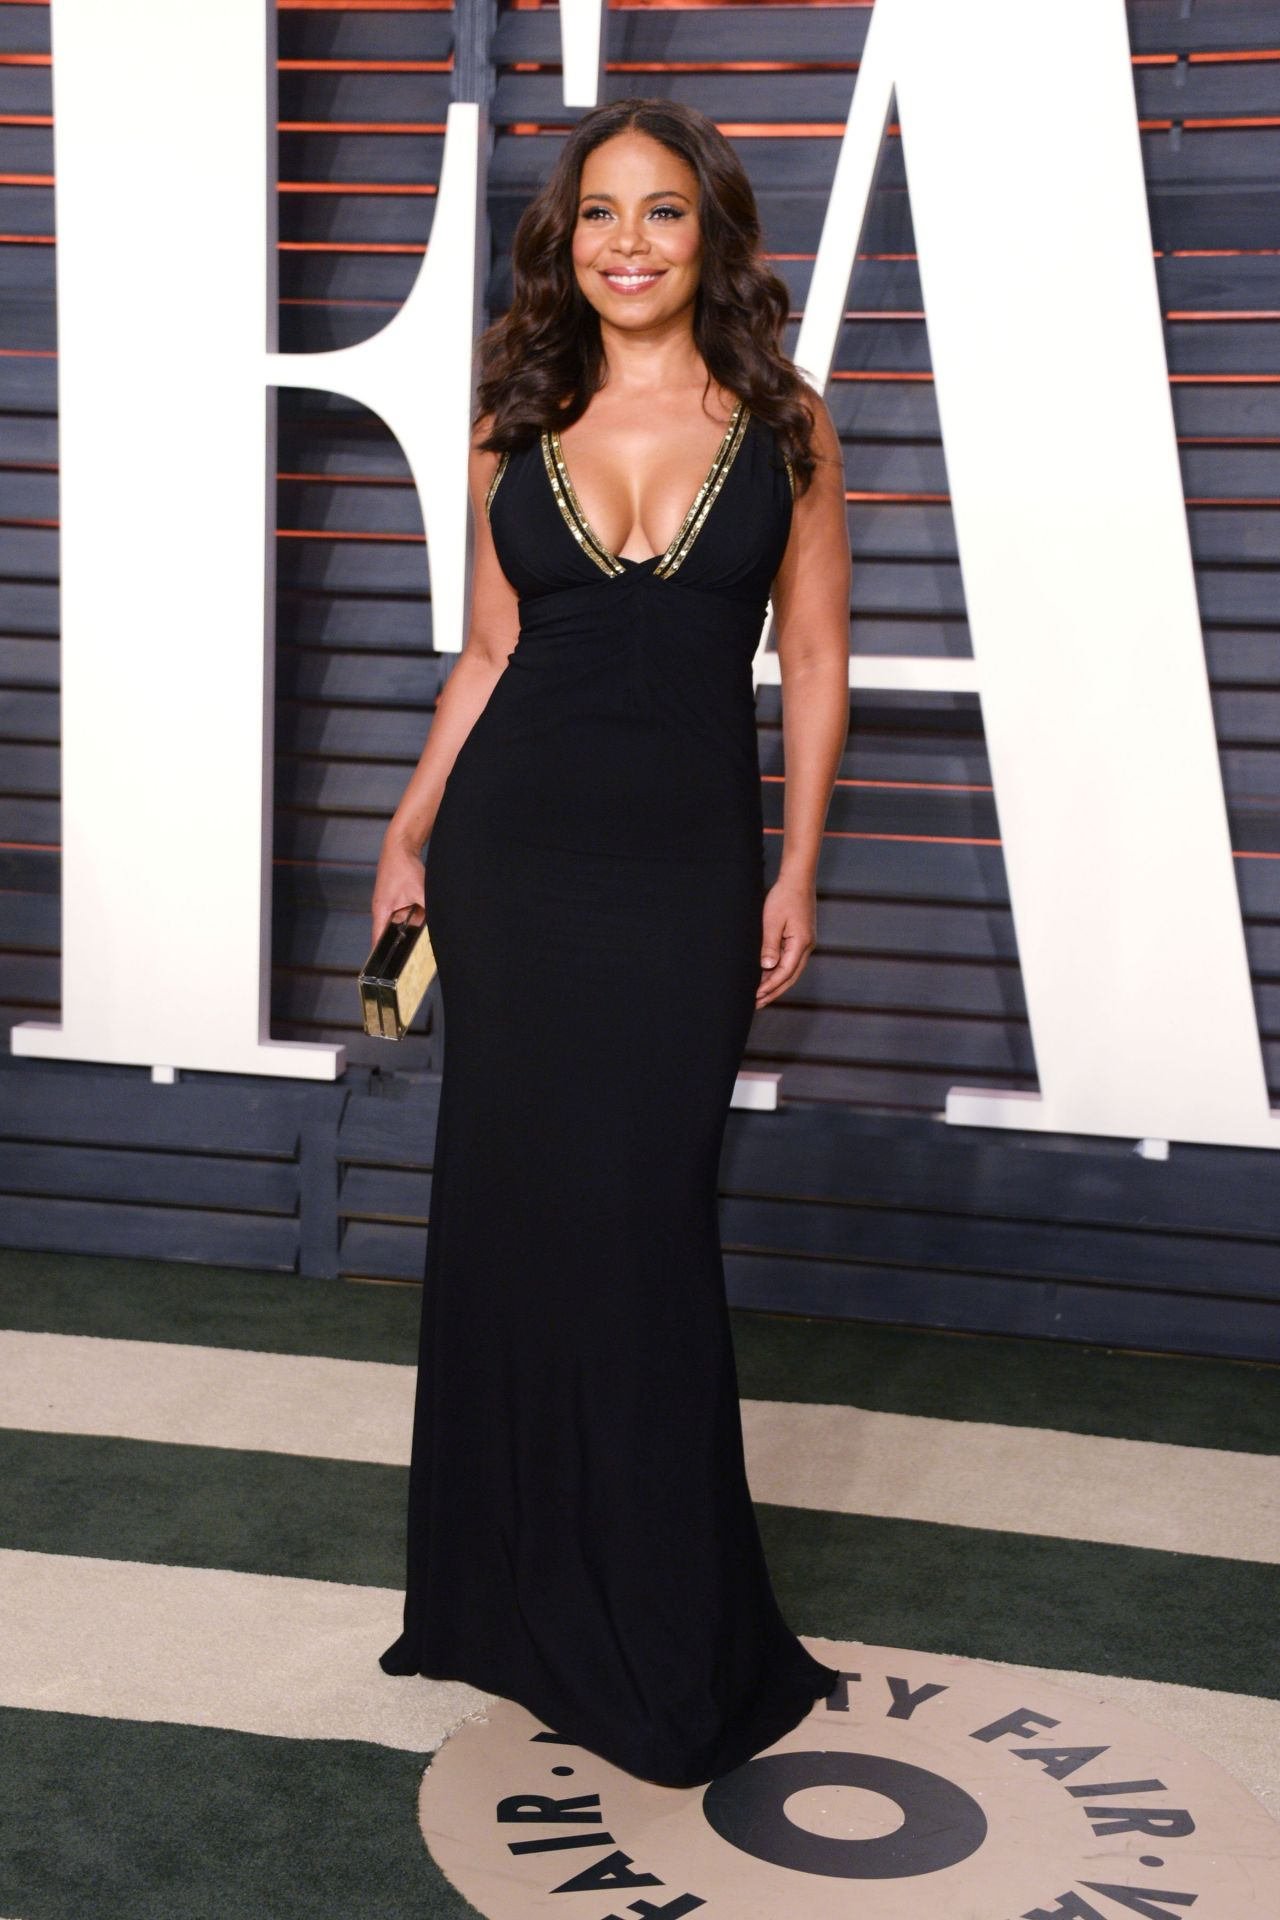 sanaa-lathan-2016-vanity-fair-oscar-party-in-beverly-hills-ca-7